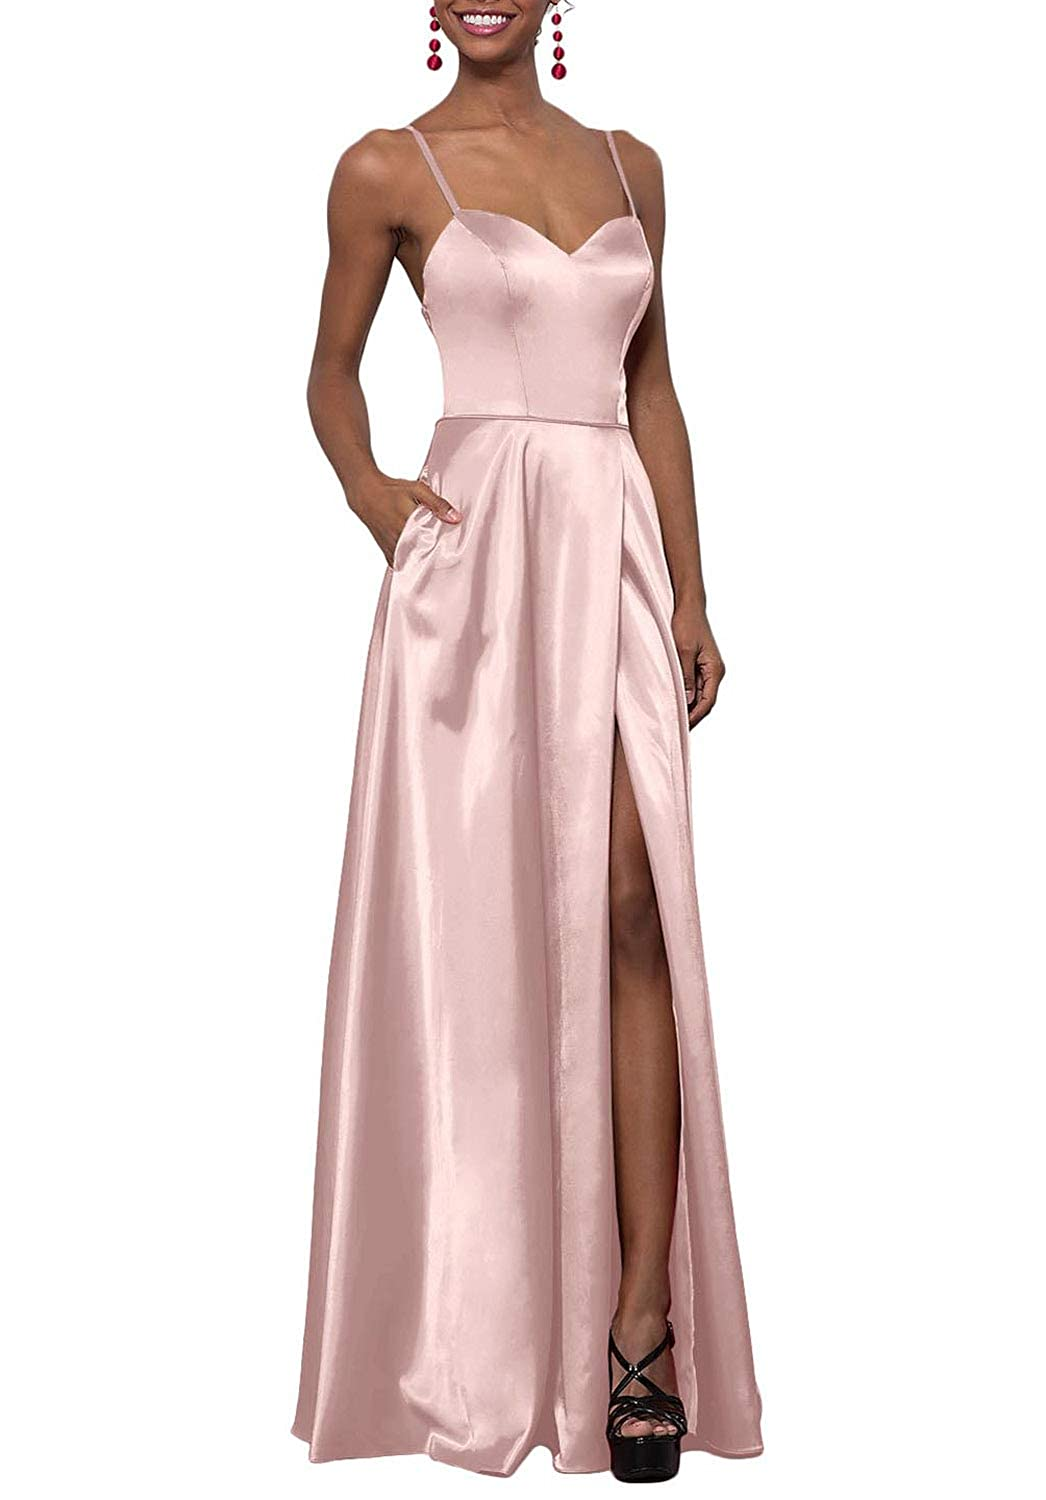 Pastel Pink YUSHENGSM Women's Sweetheart CorsetBack Satin Prom Dress Long Evening Party Gown Pockets